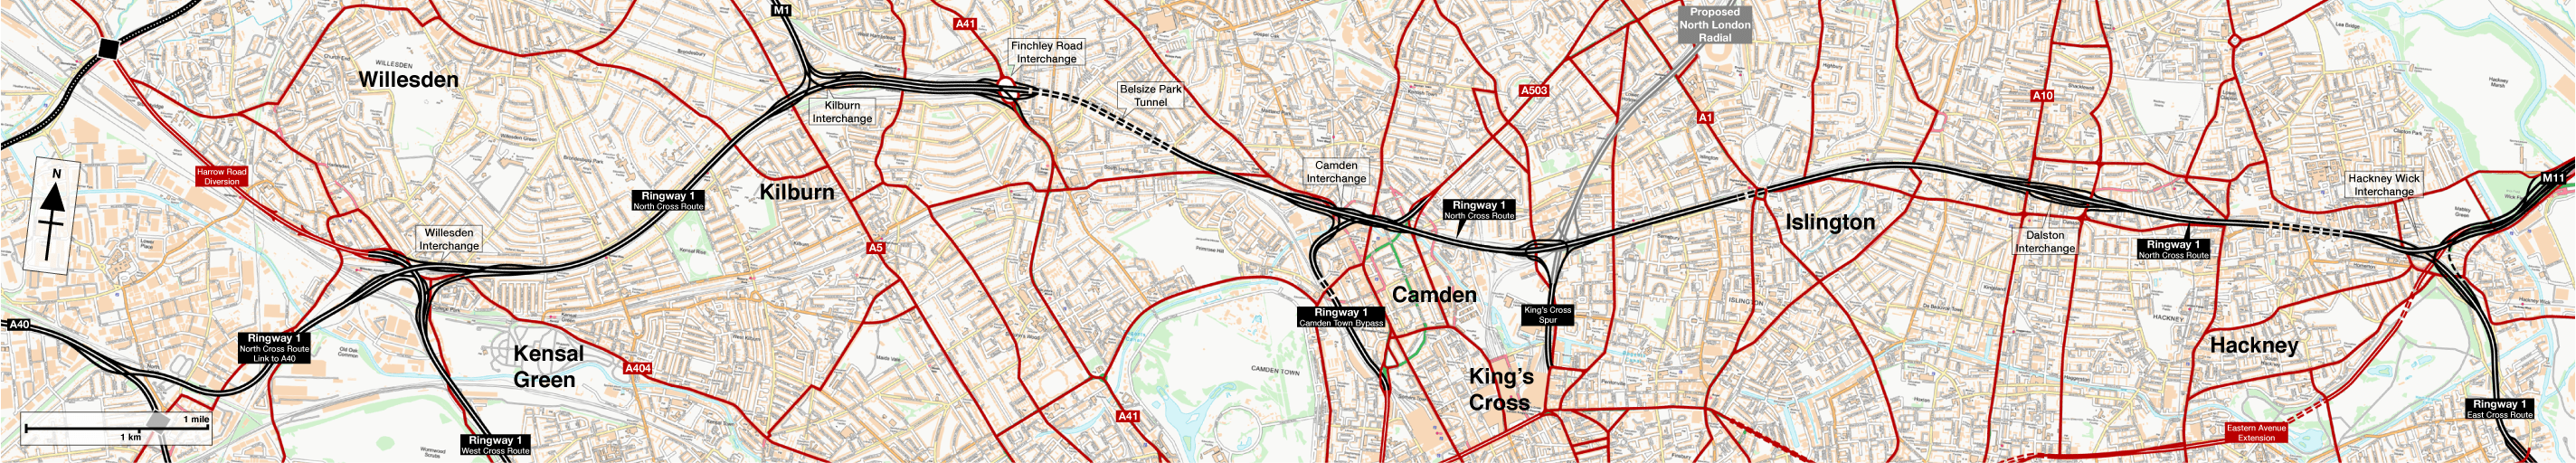 Map of Ringway 1 North Cross Route